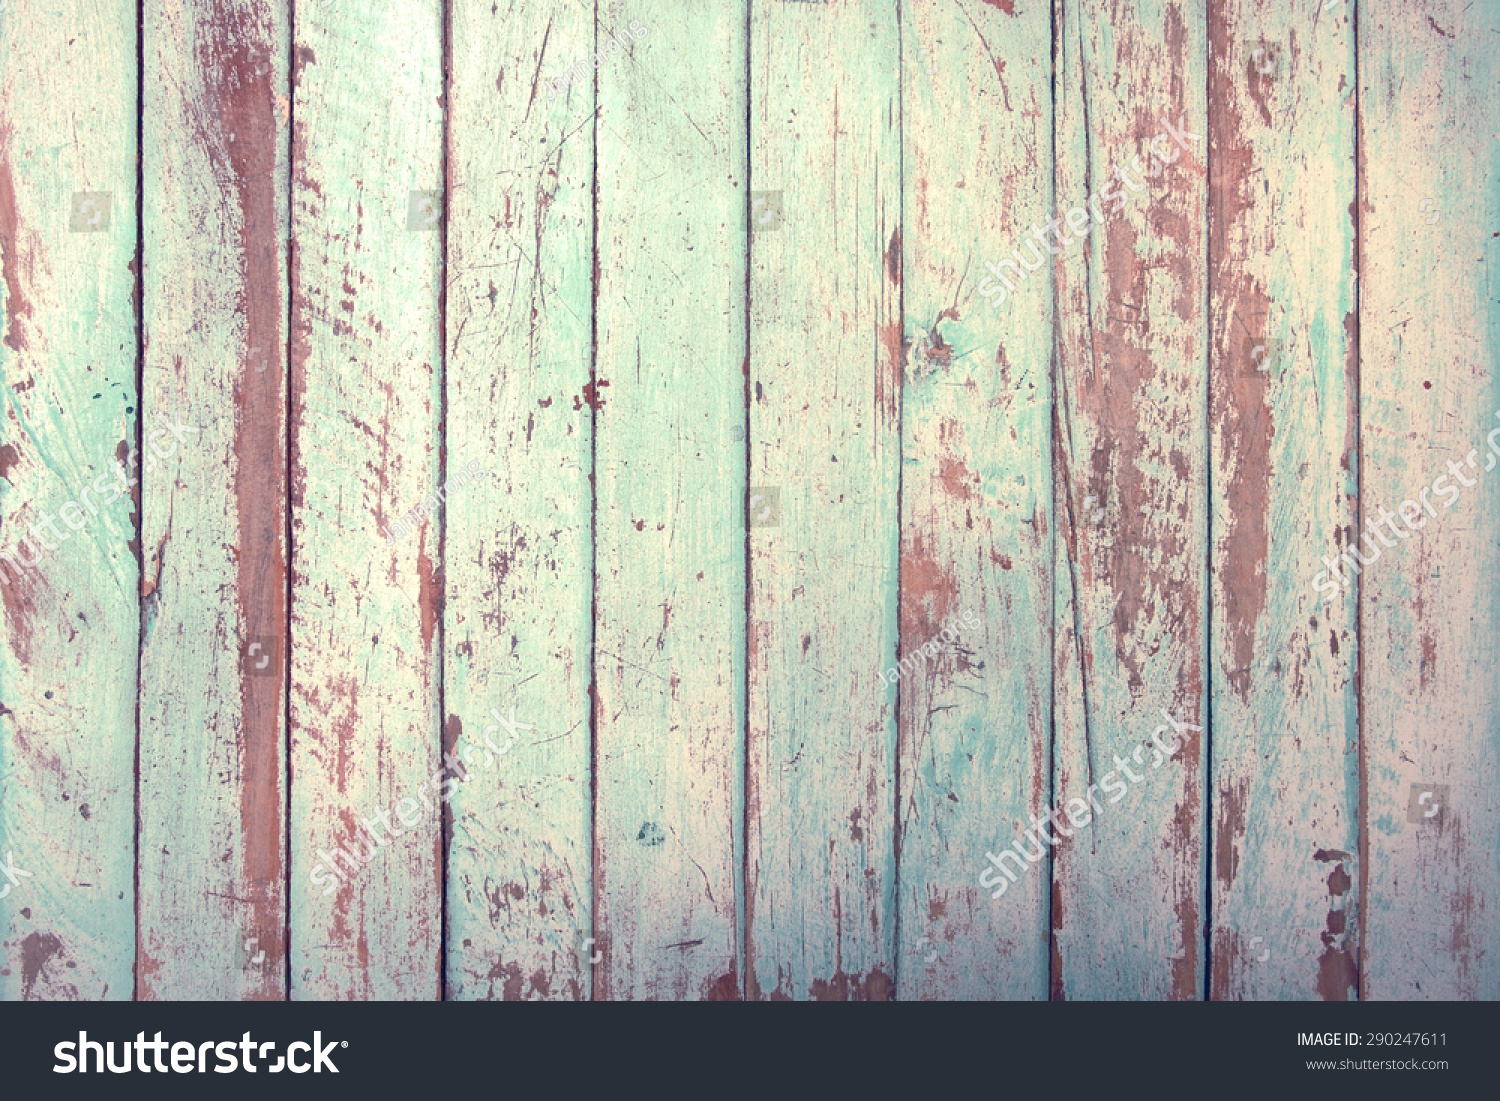 Marvelous photograph of Old vintage panel wood background from solid wood ruin table pale  with #747B50 color and 1500x1100 pixels